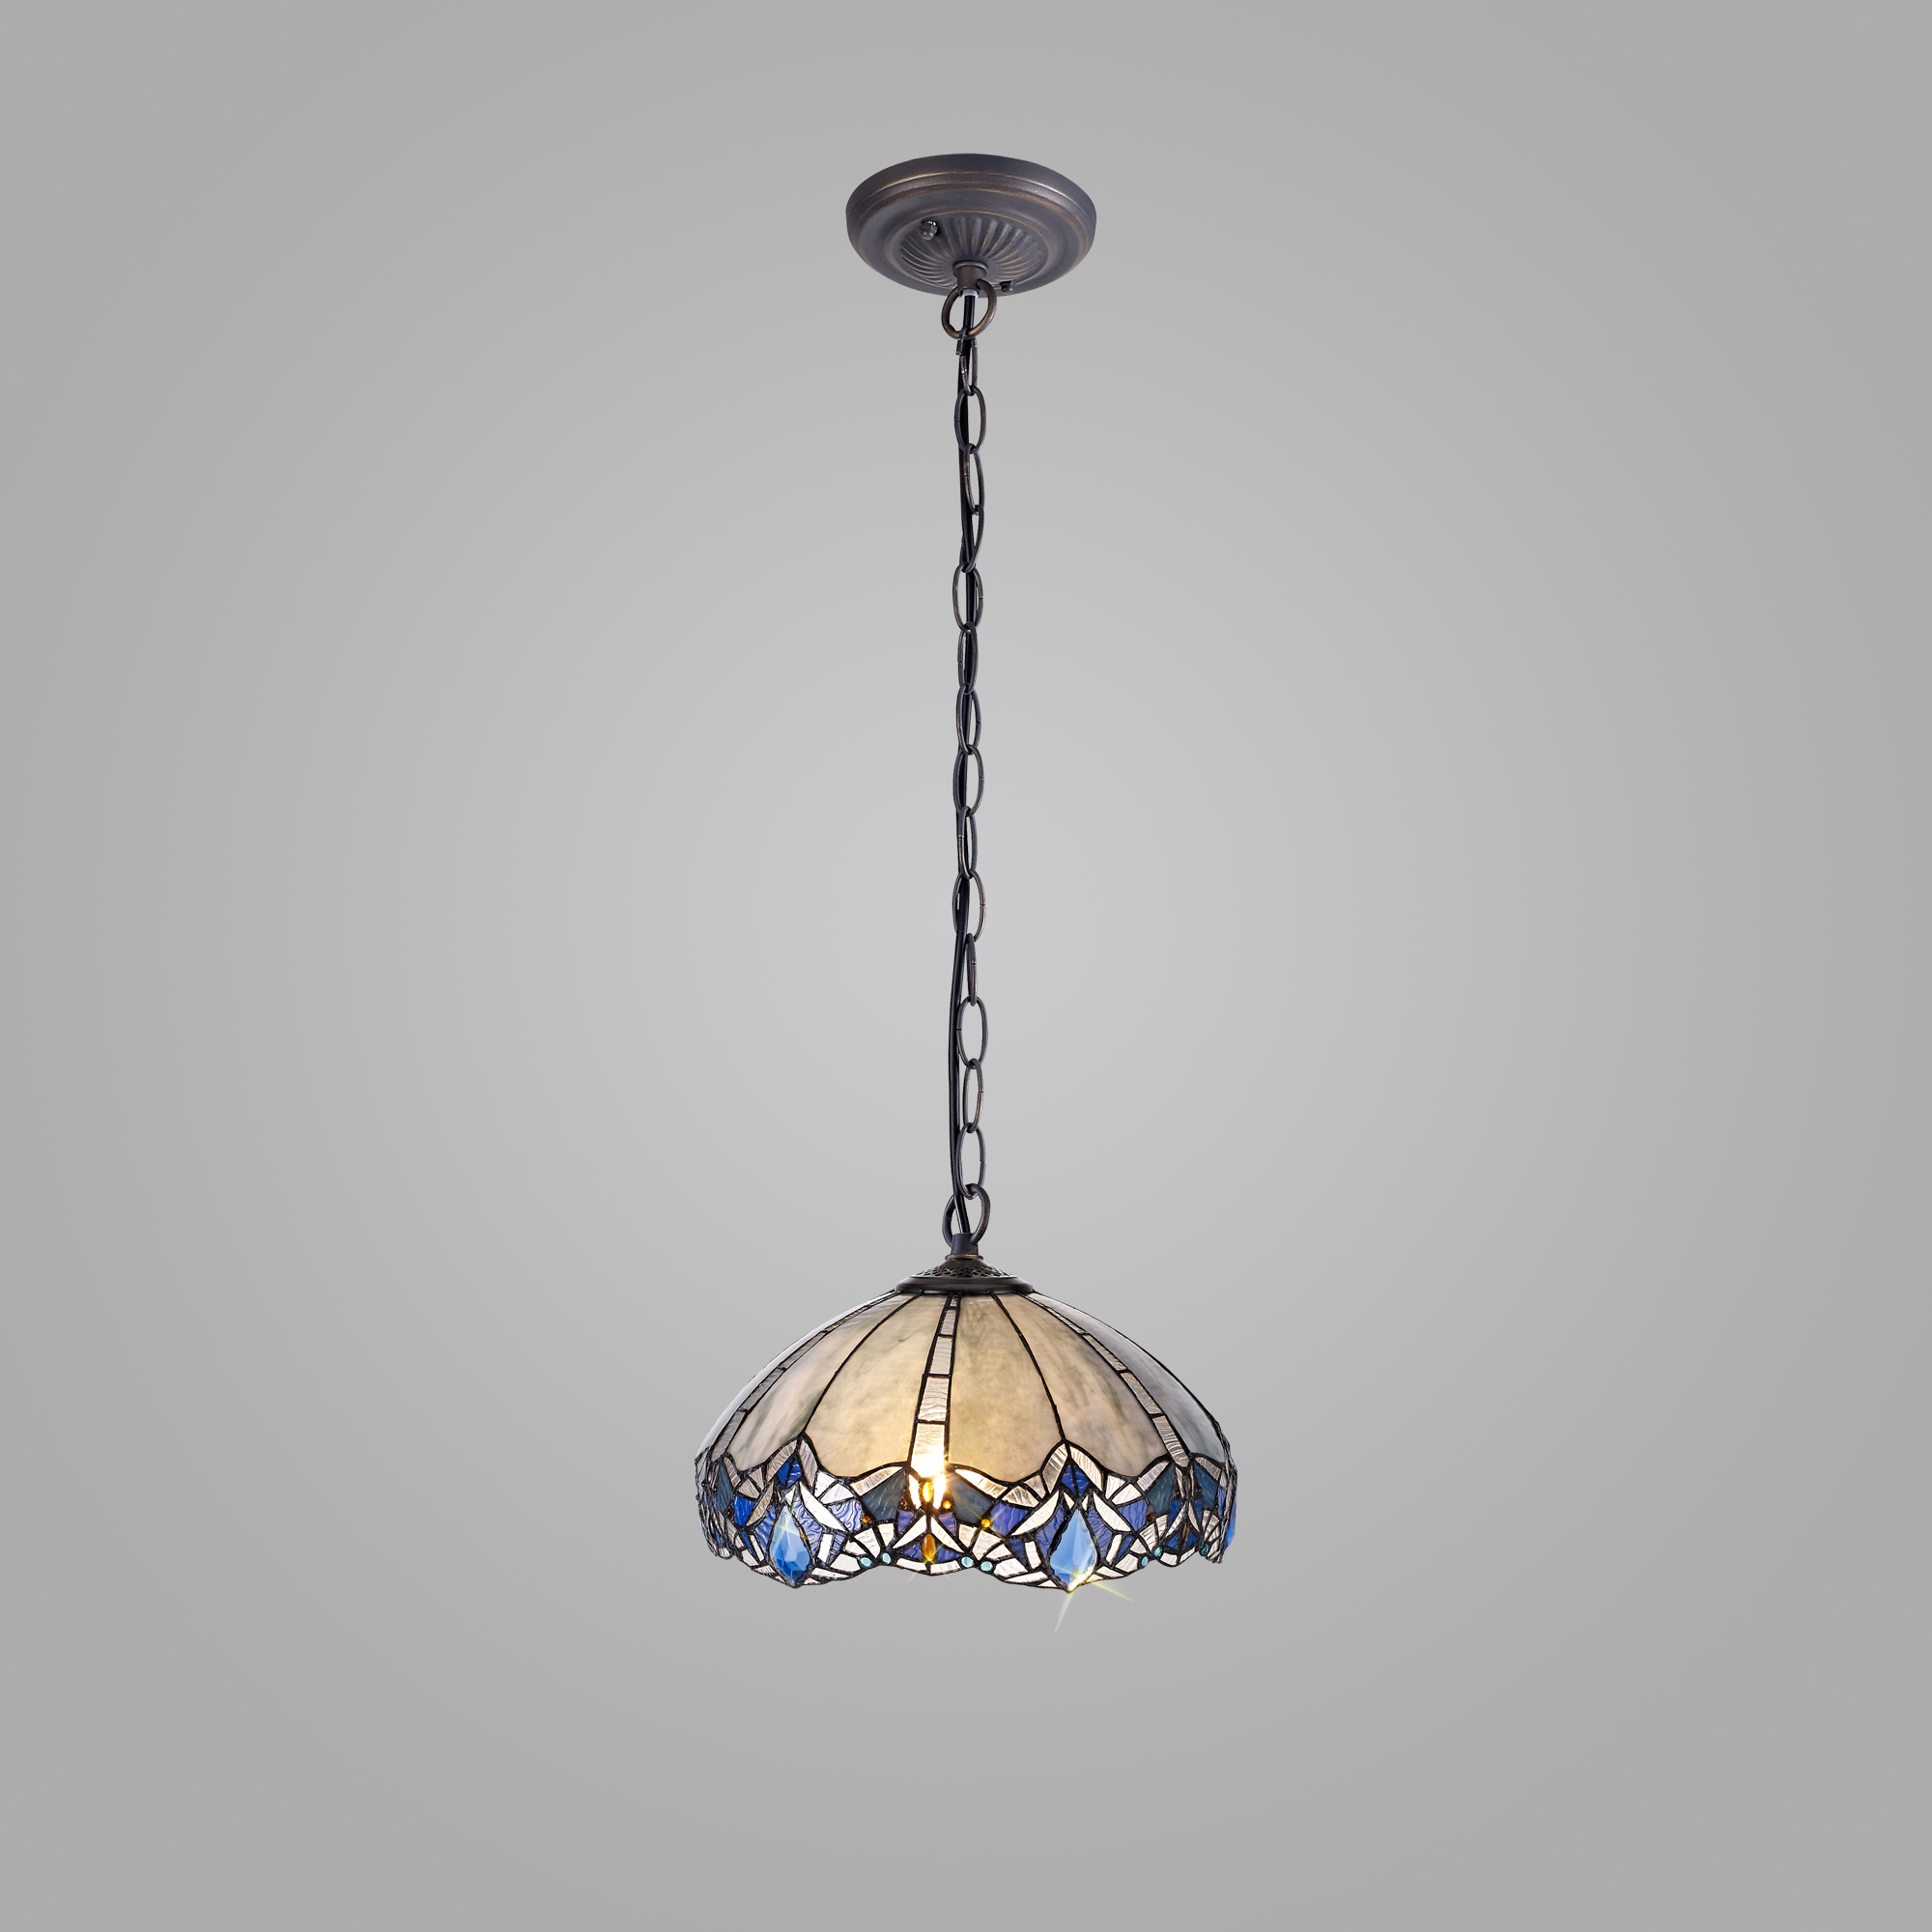 1 Light Downlight Pendant E27 With 40cm Tiffany Shade, Blue/Clear Crystal/Aged Antique Brass